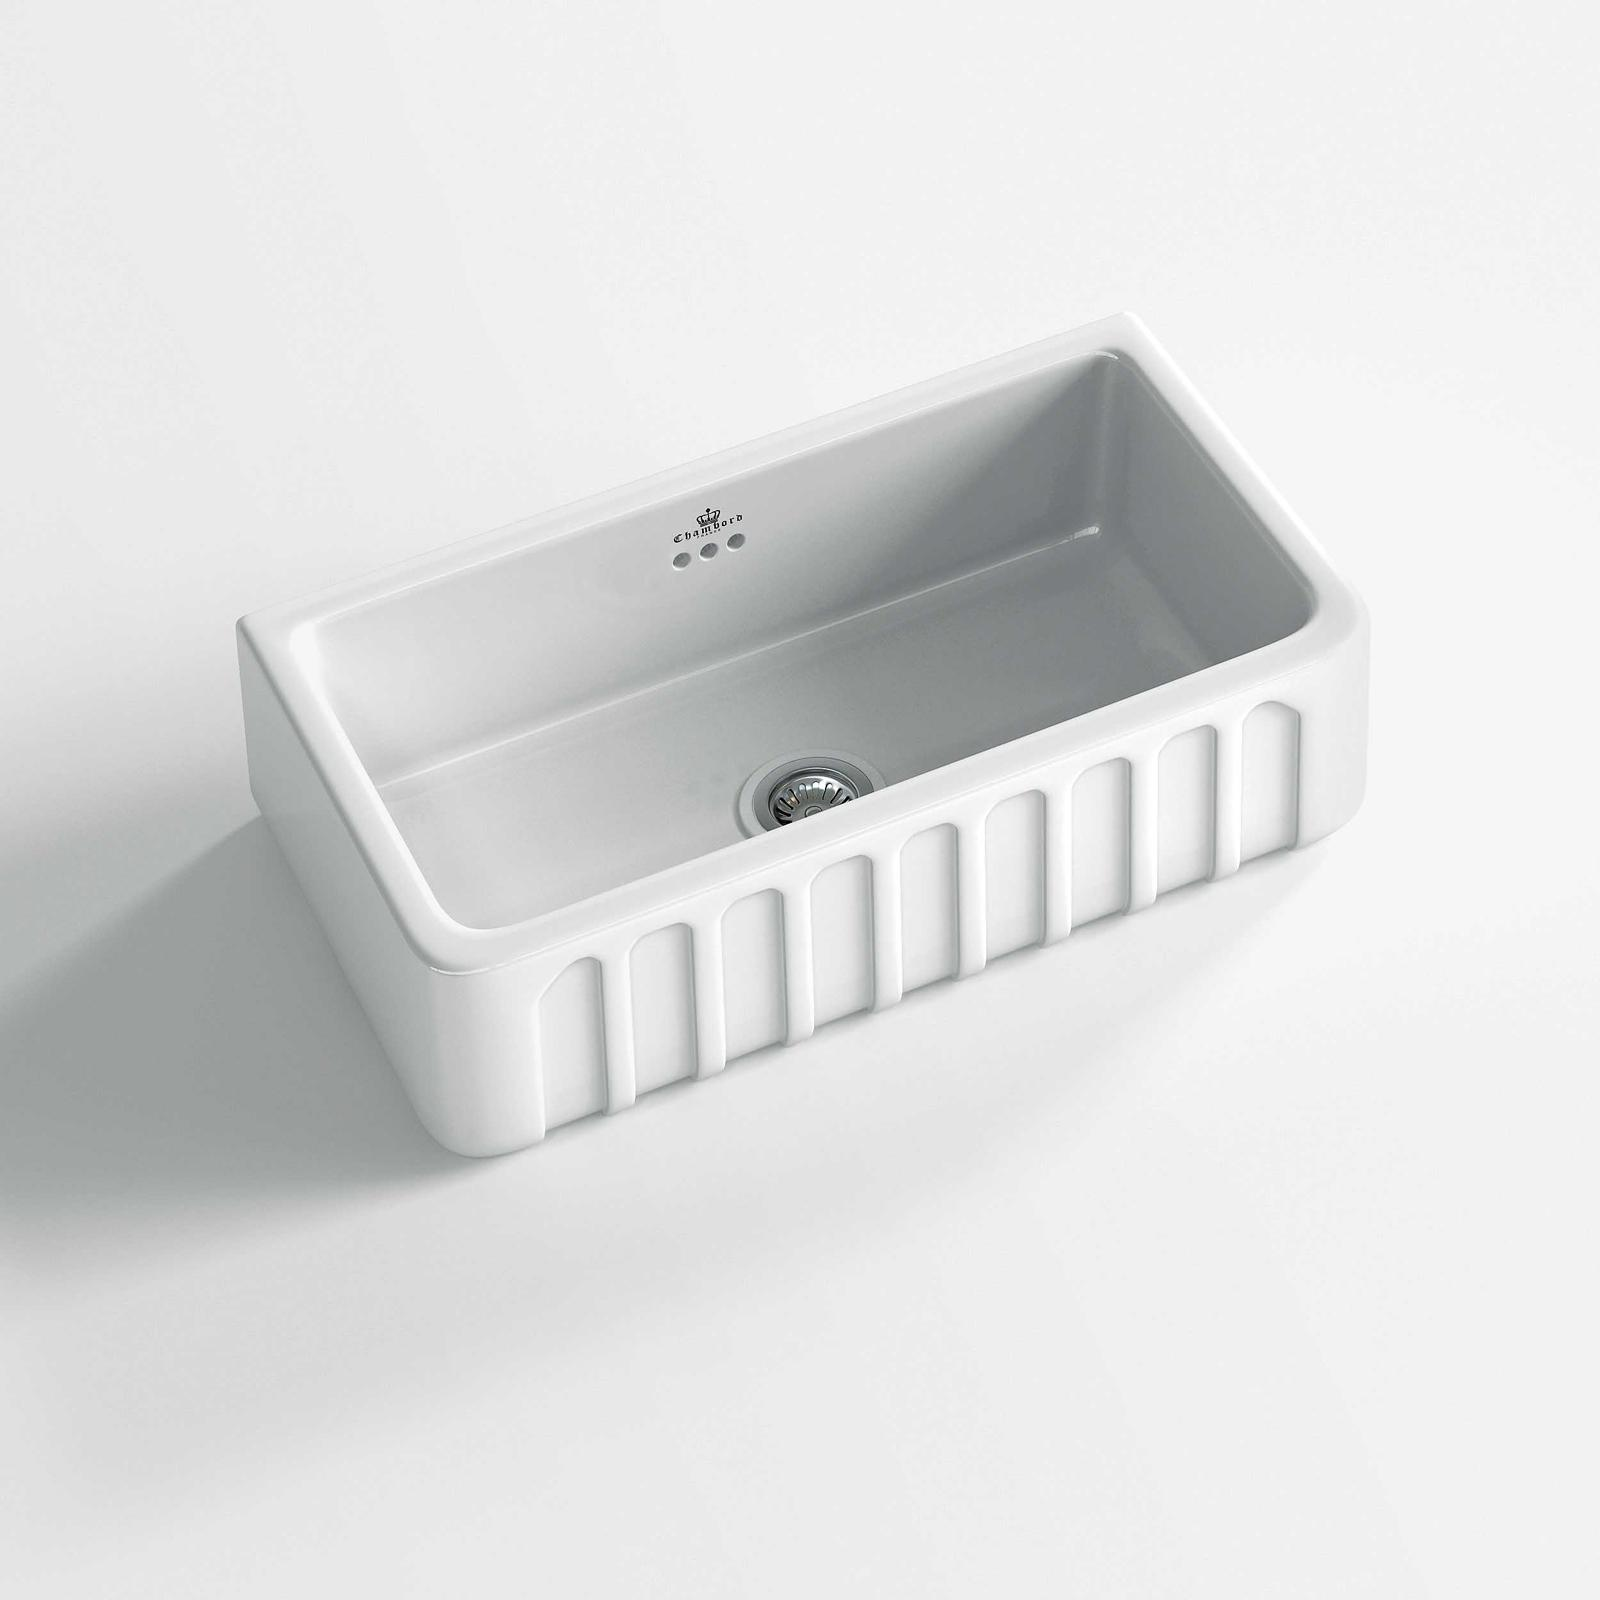 High-quality sink Louis II - single bowl, ceramic